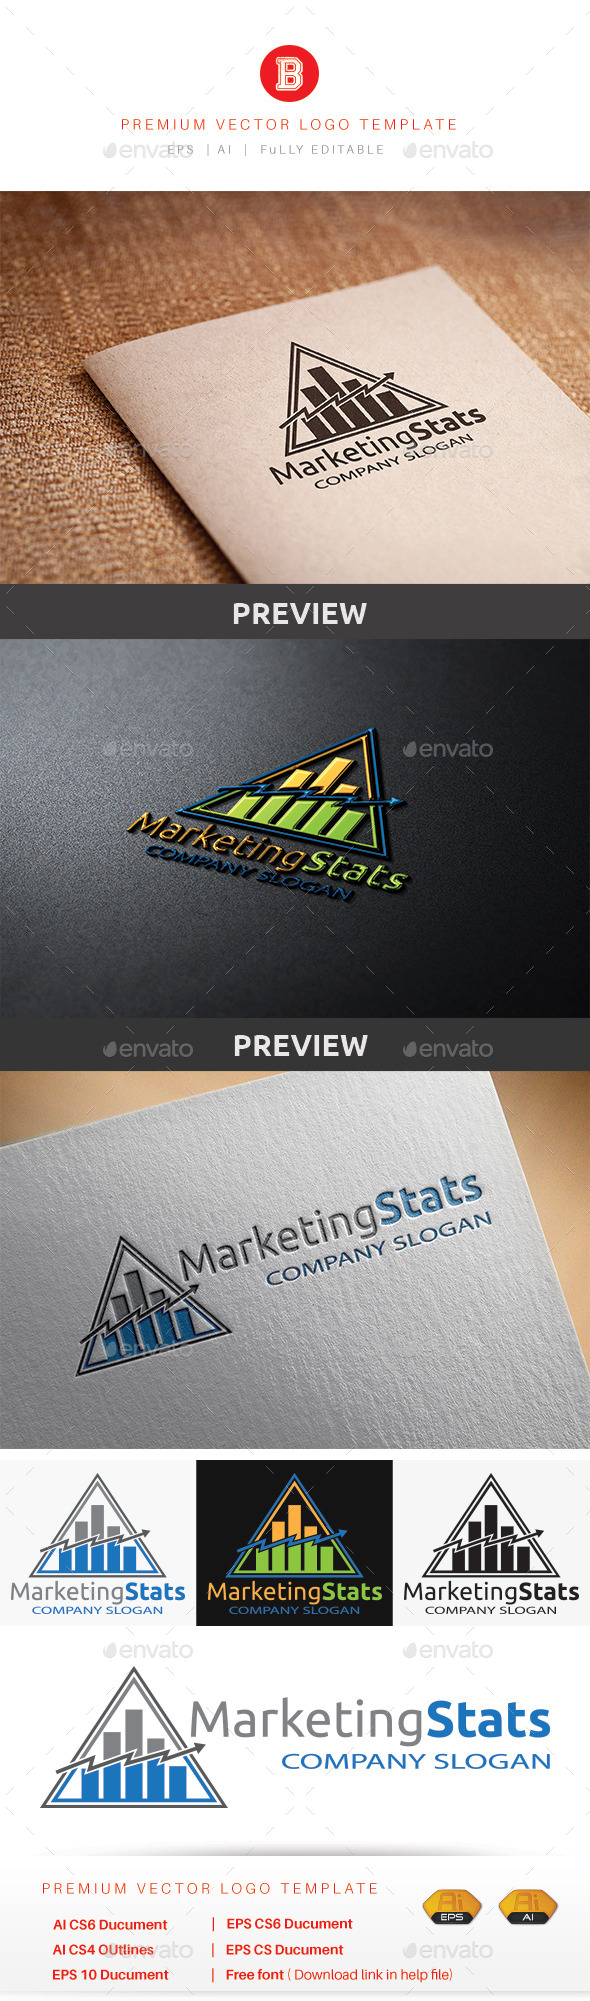 GraphicRiver Marketing Stats 8847247